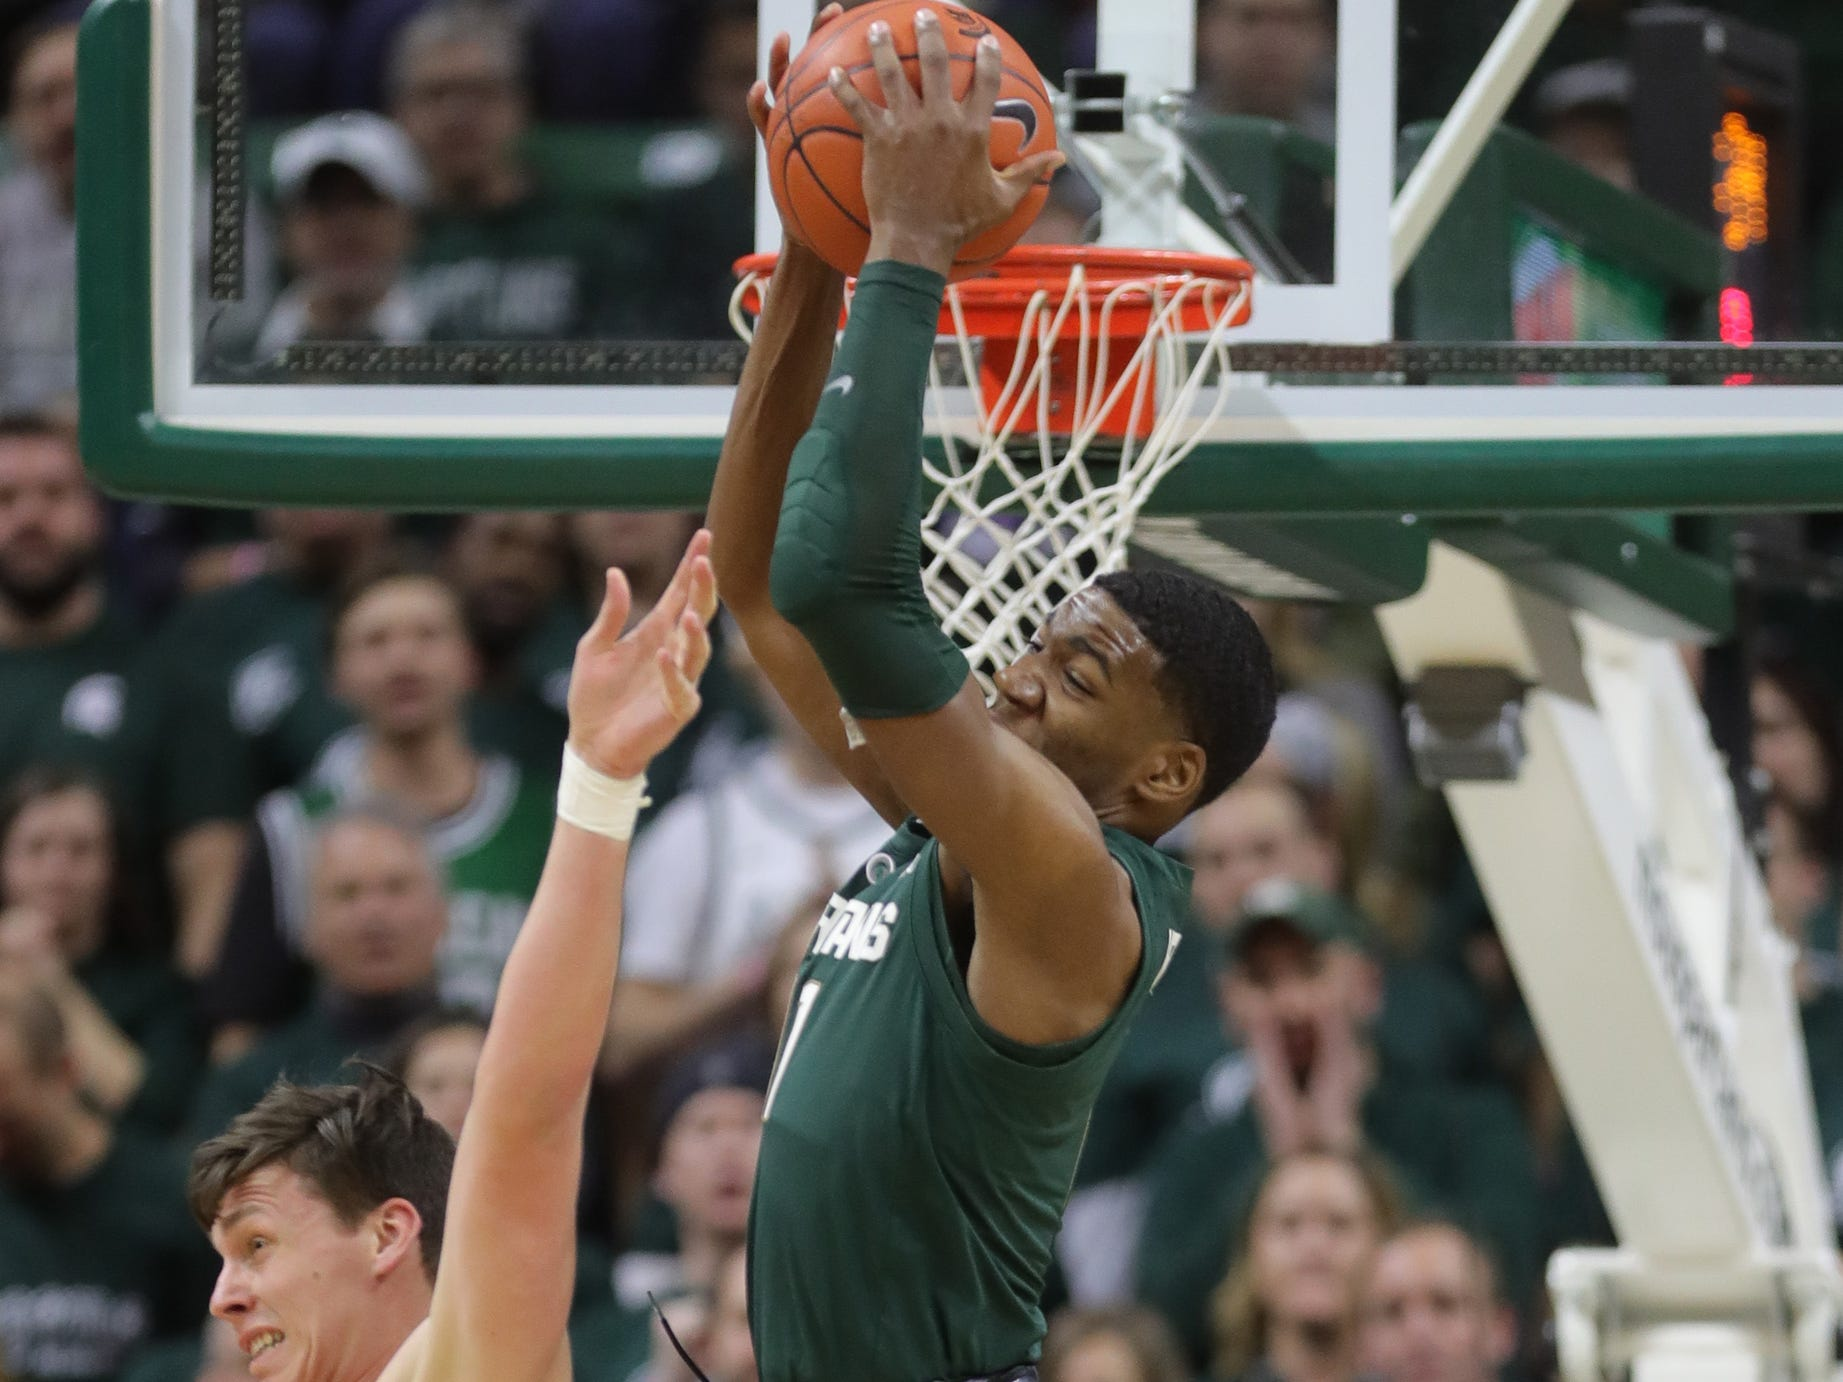 Michigan State forward Aaron Henry rebounds against Nebraska during first half action Tuesday, March 5, 2019 at the Breslin Center in East Lansing, Mich.